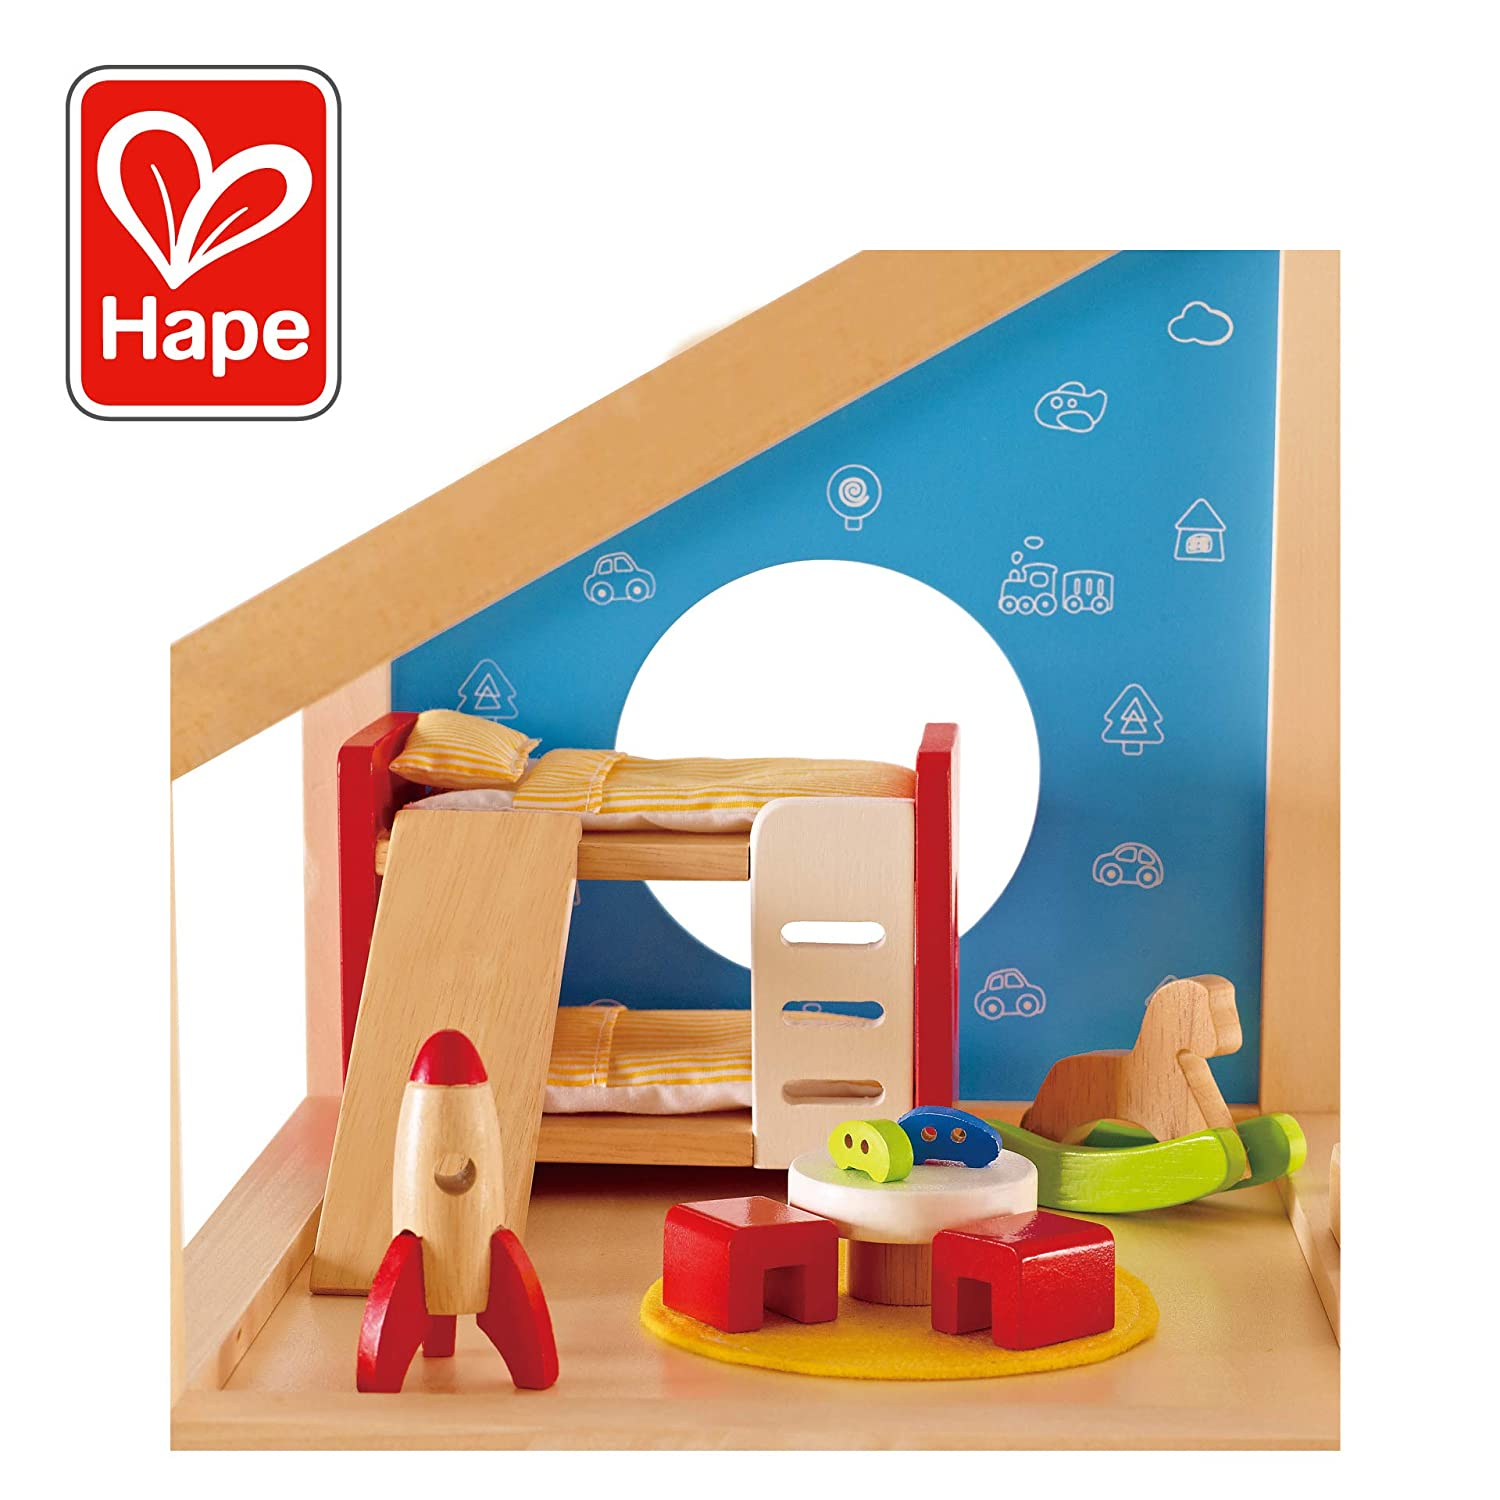 24a71353 Hape Wooden Doll House Furniture Children's Room with Accessories